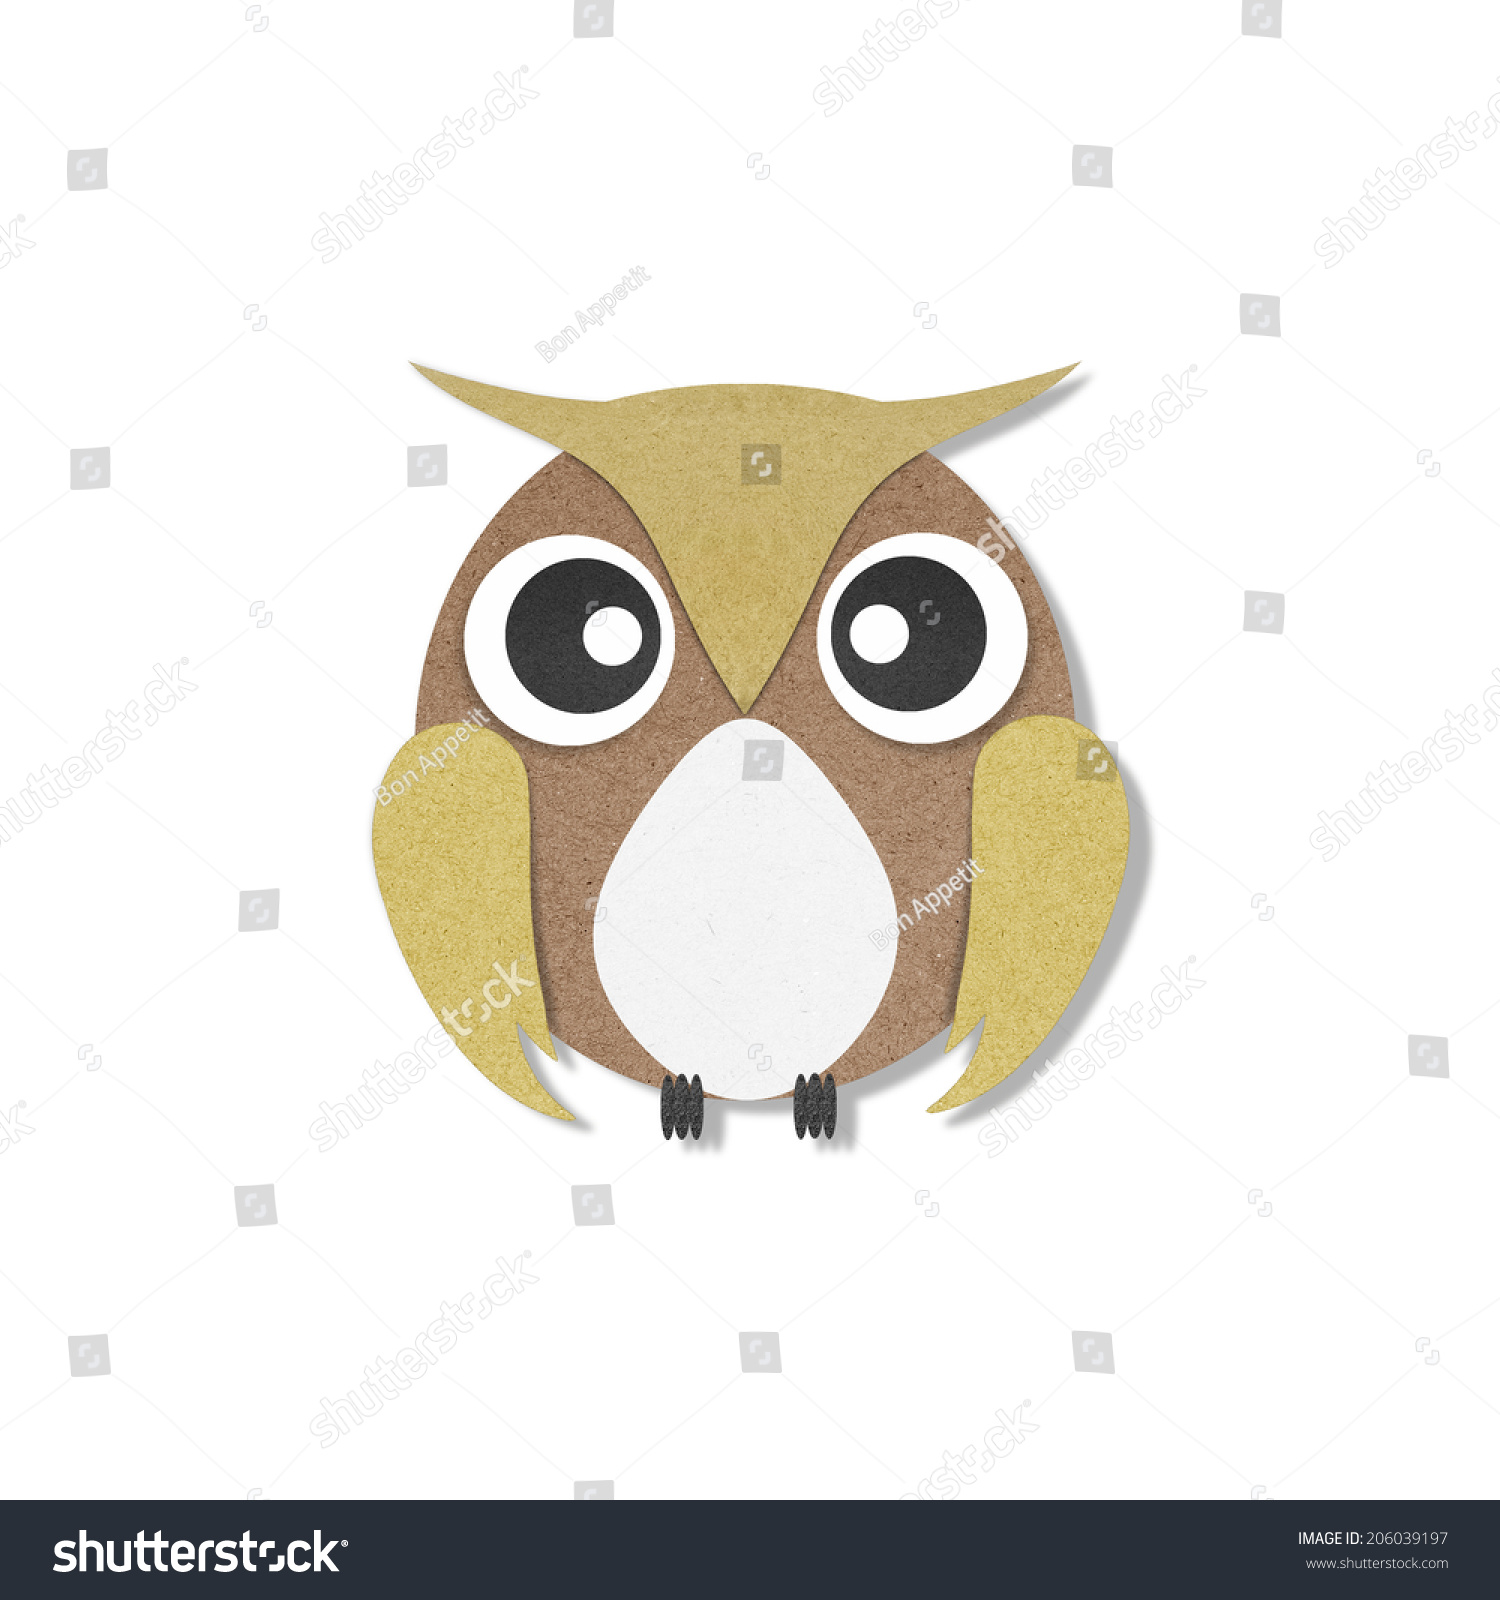 Owl paper craft on white background stock illustration 206039197 owl paper craft on white background jeuxipadfo Choice Image